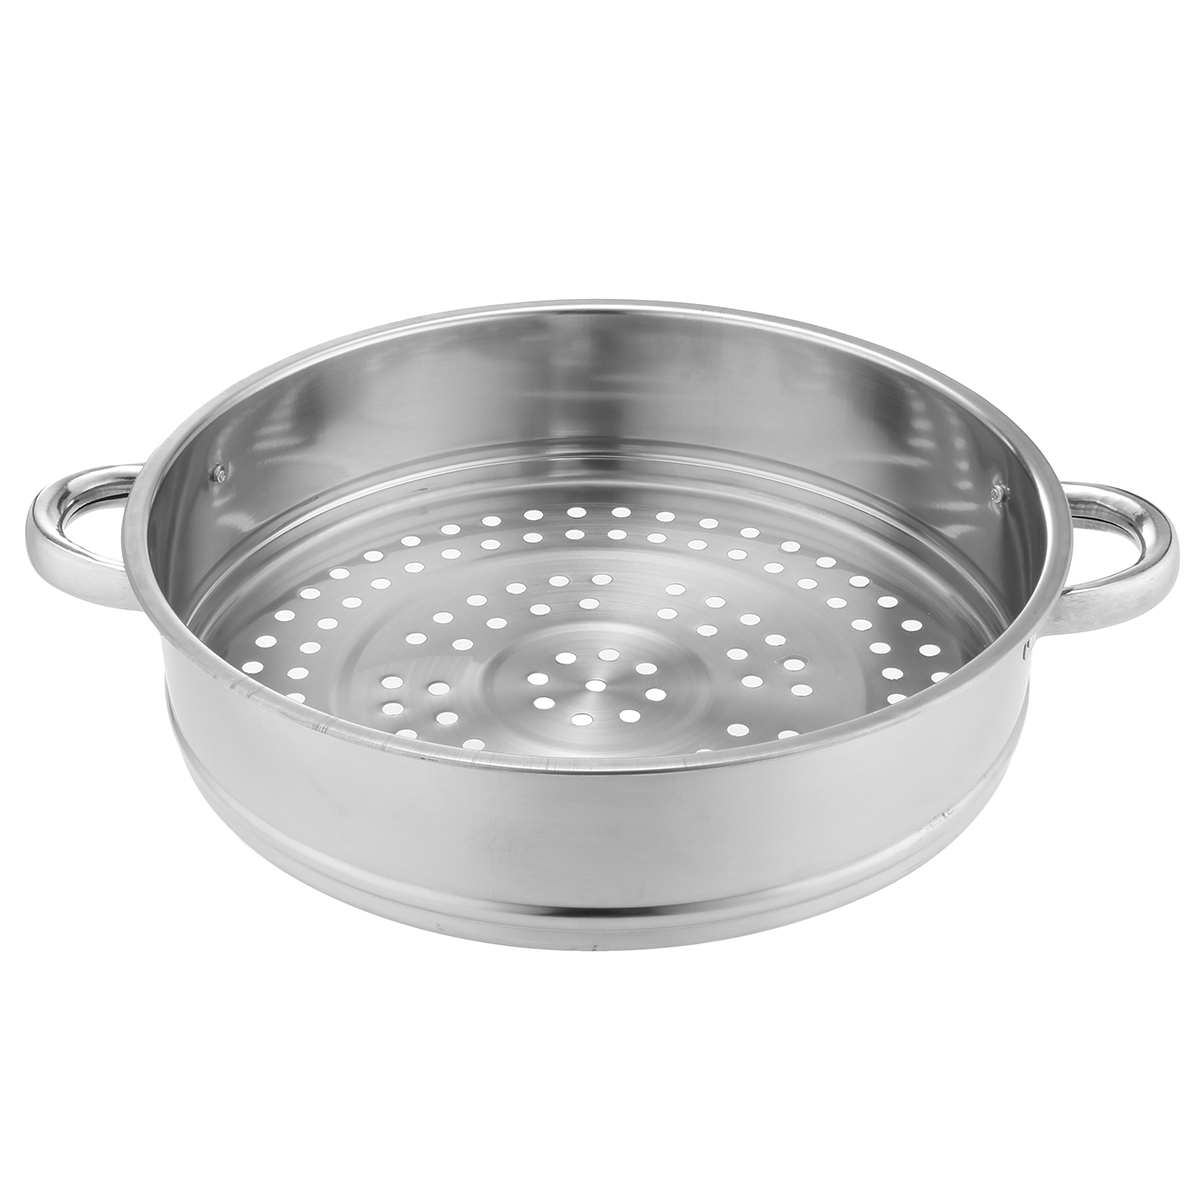 5-Tiers-Stainless-Steel-Steamer-Pot-Induction-Compatible-Cookware-Basket-Pan thumbnail 6